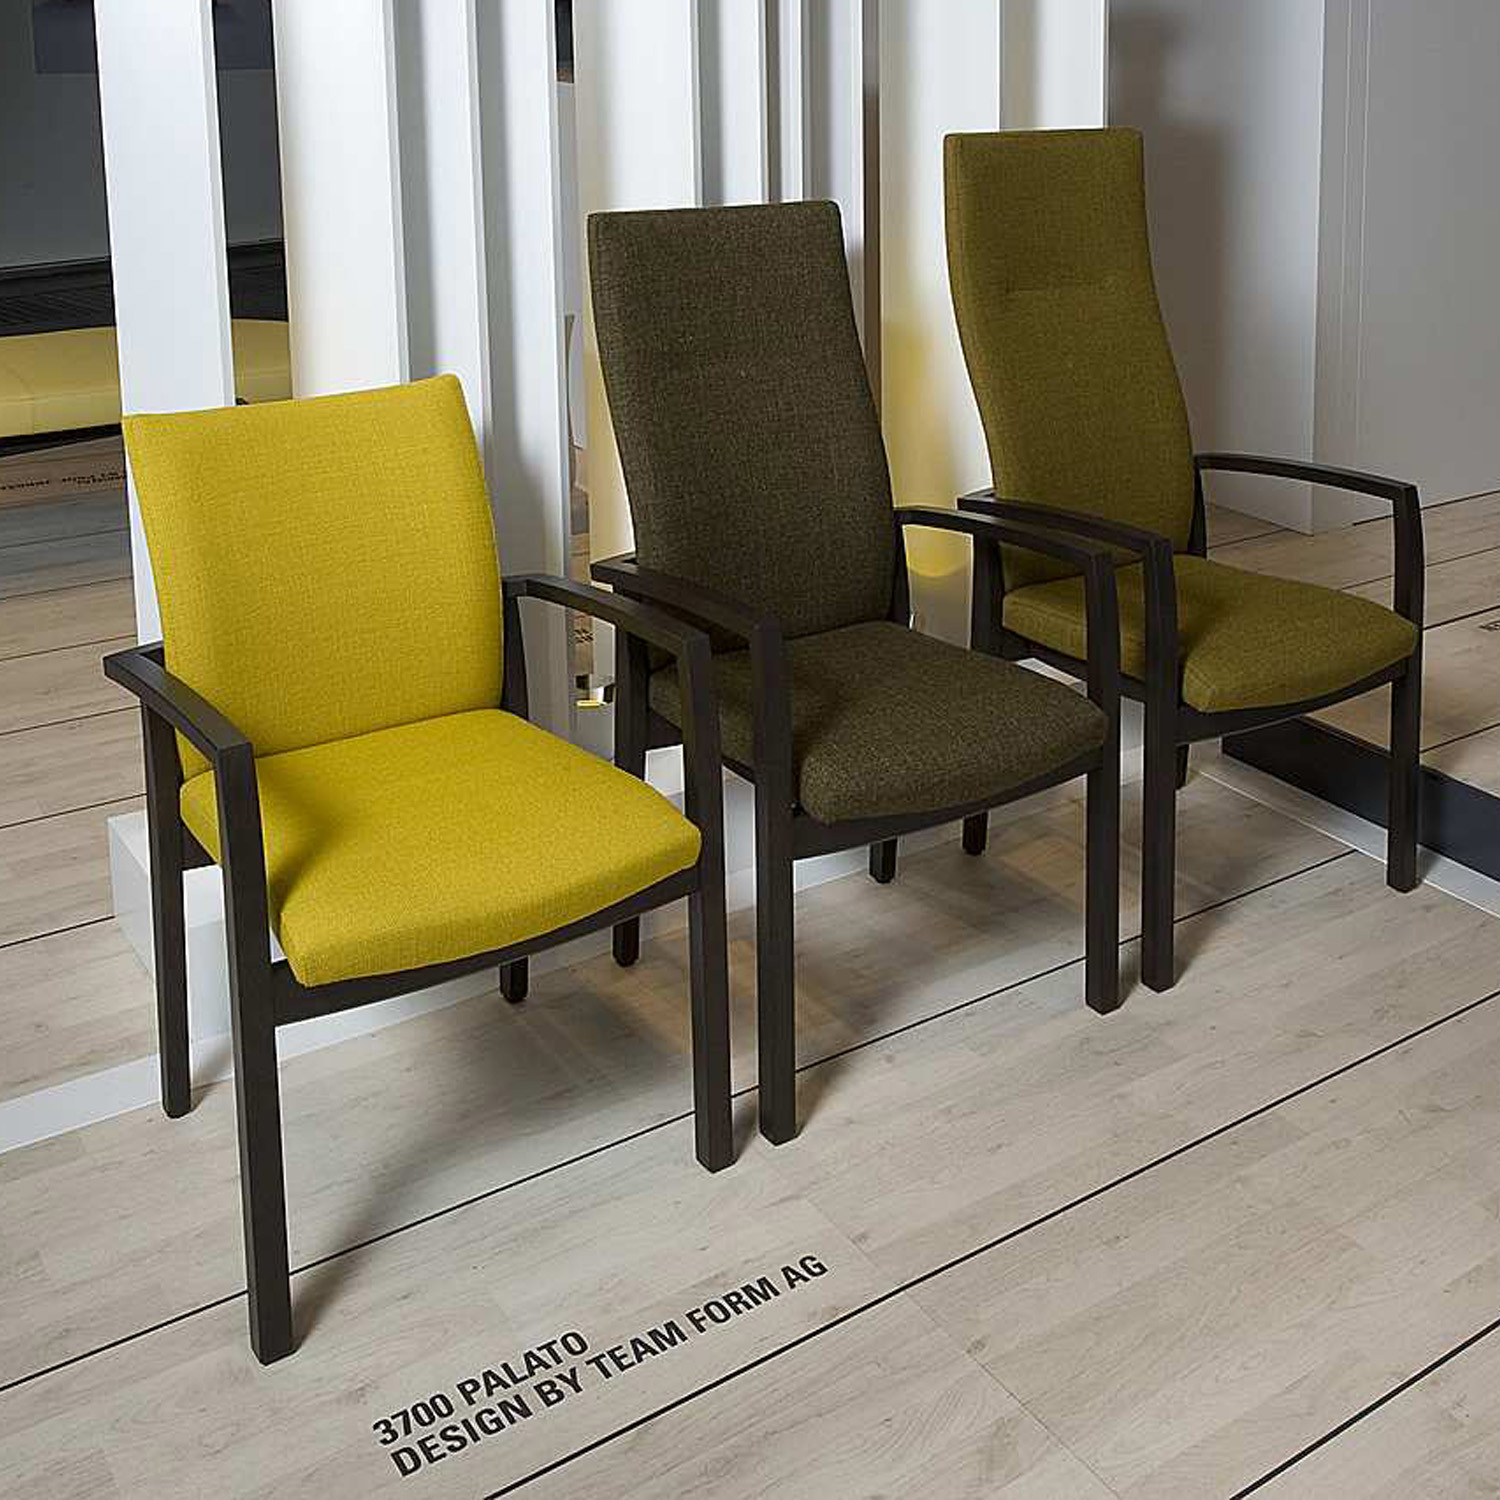 3700 Palato Armchairs designed by Team Form AG